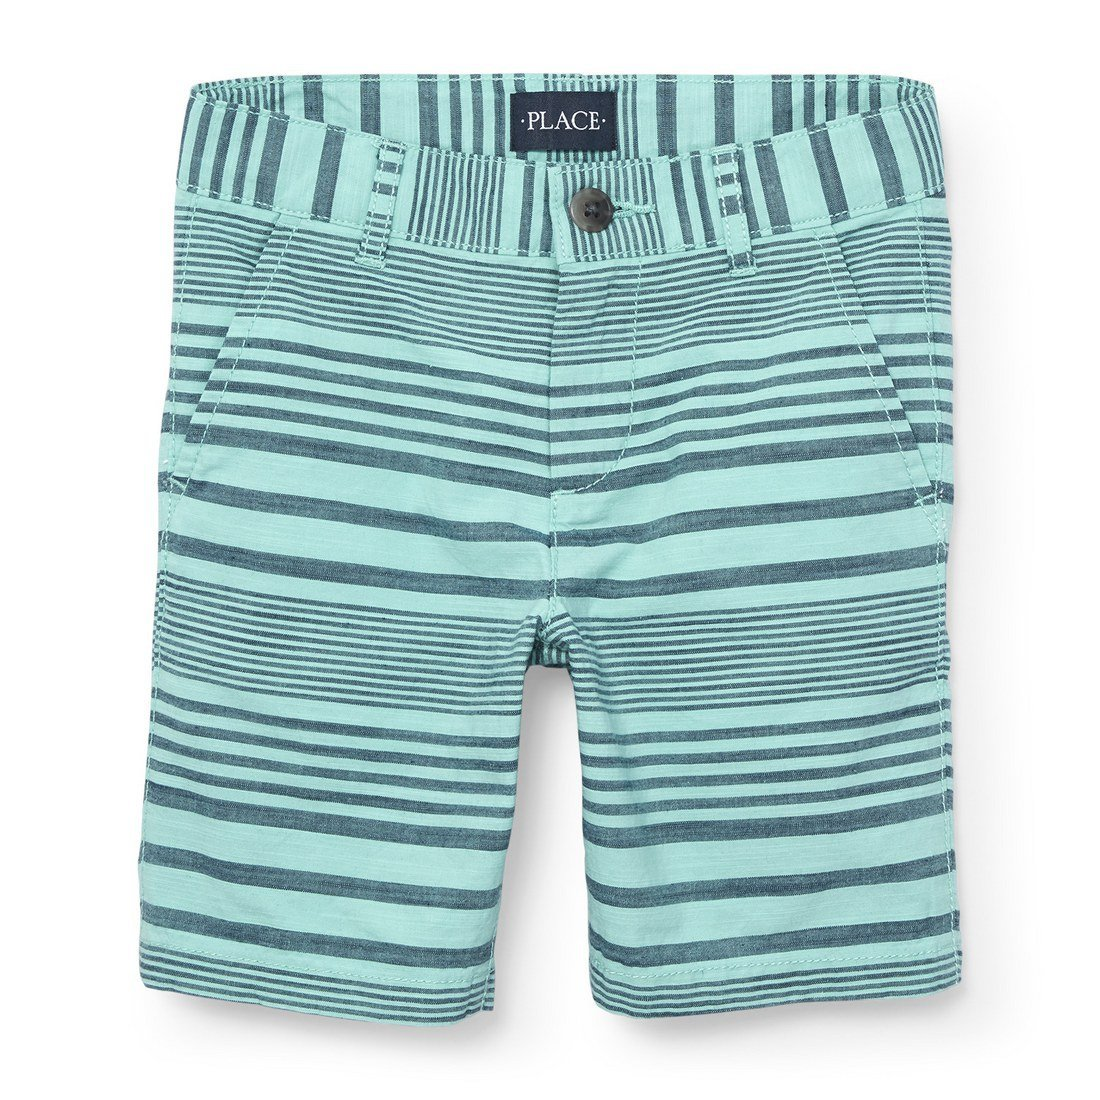 The Children's Place Big Boys' Print Short, Mellow Aqua 4750, 6